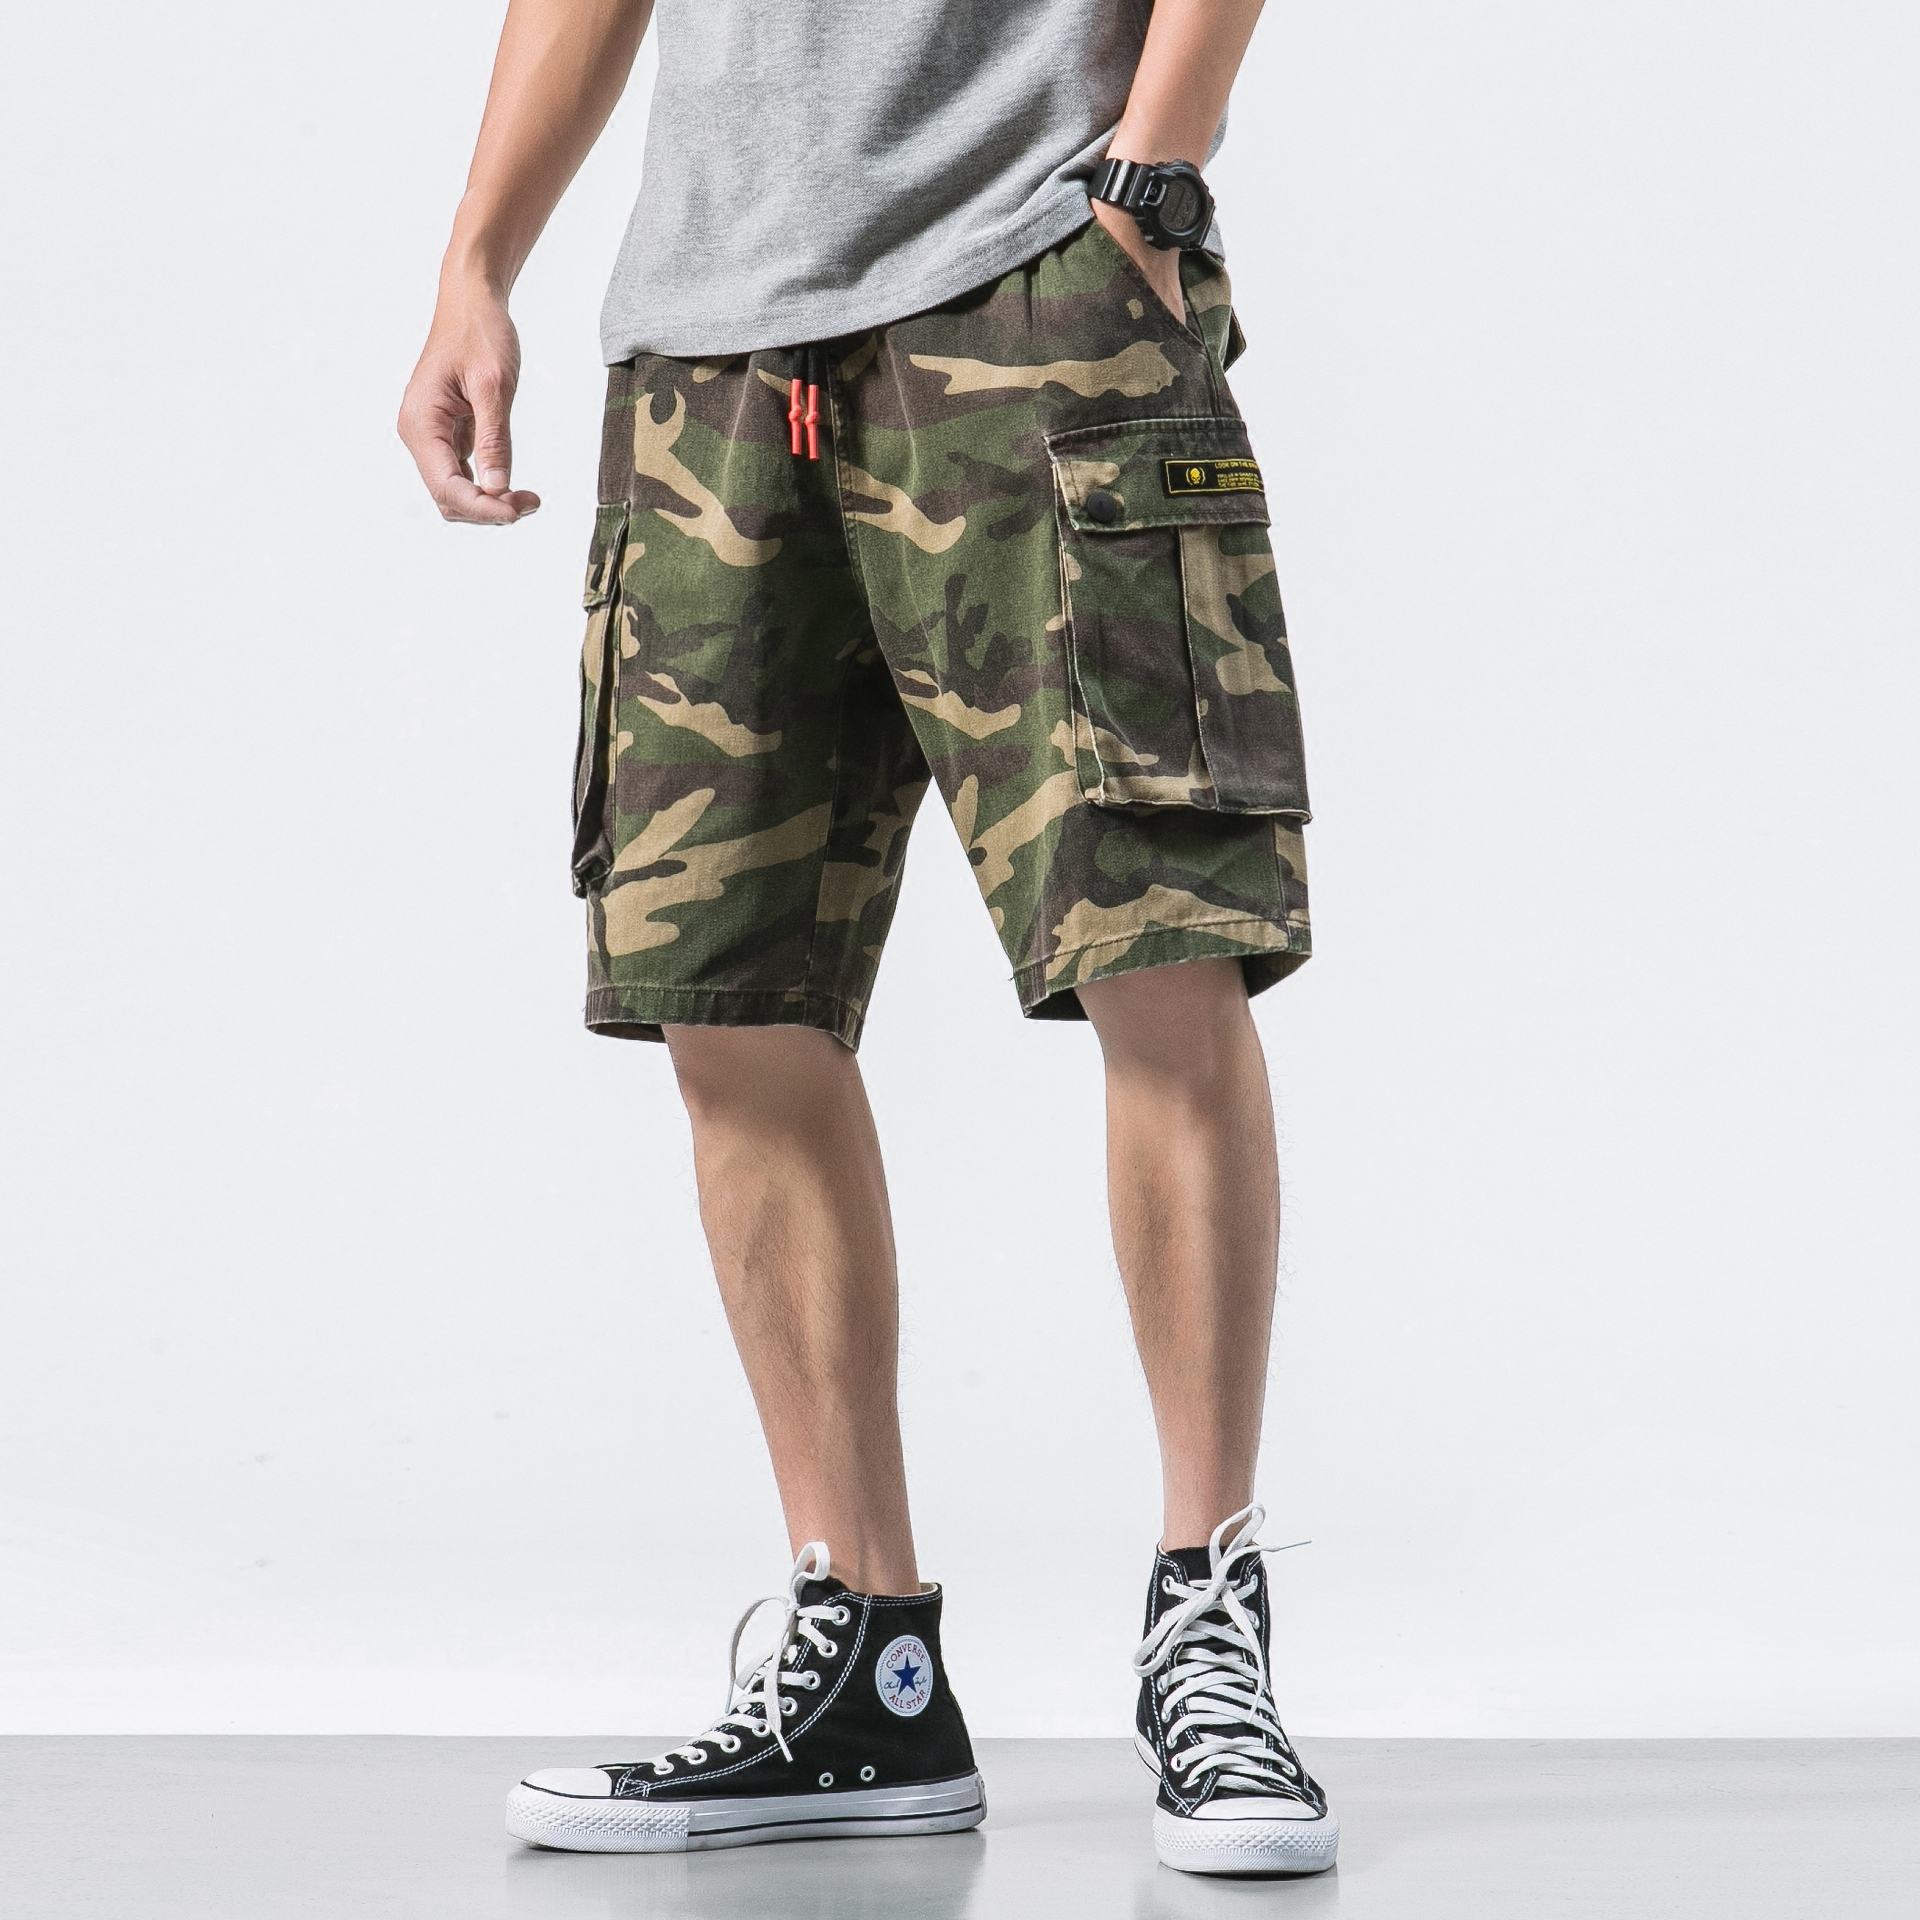 Men's Clothing Bright Shorts Mens Summer Korean Version Of The Trend Yu Wenle Tooling Casual Five Pants Loose Tide Brand Student Sports Pants